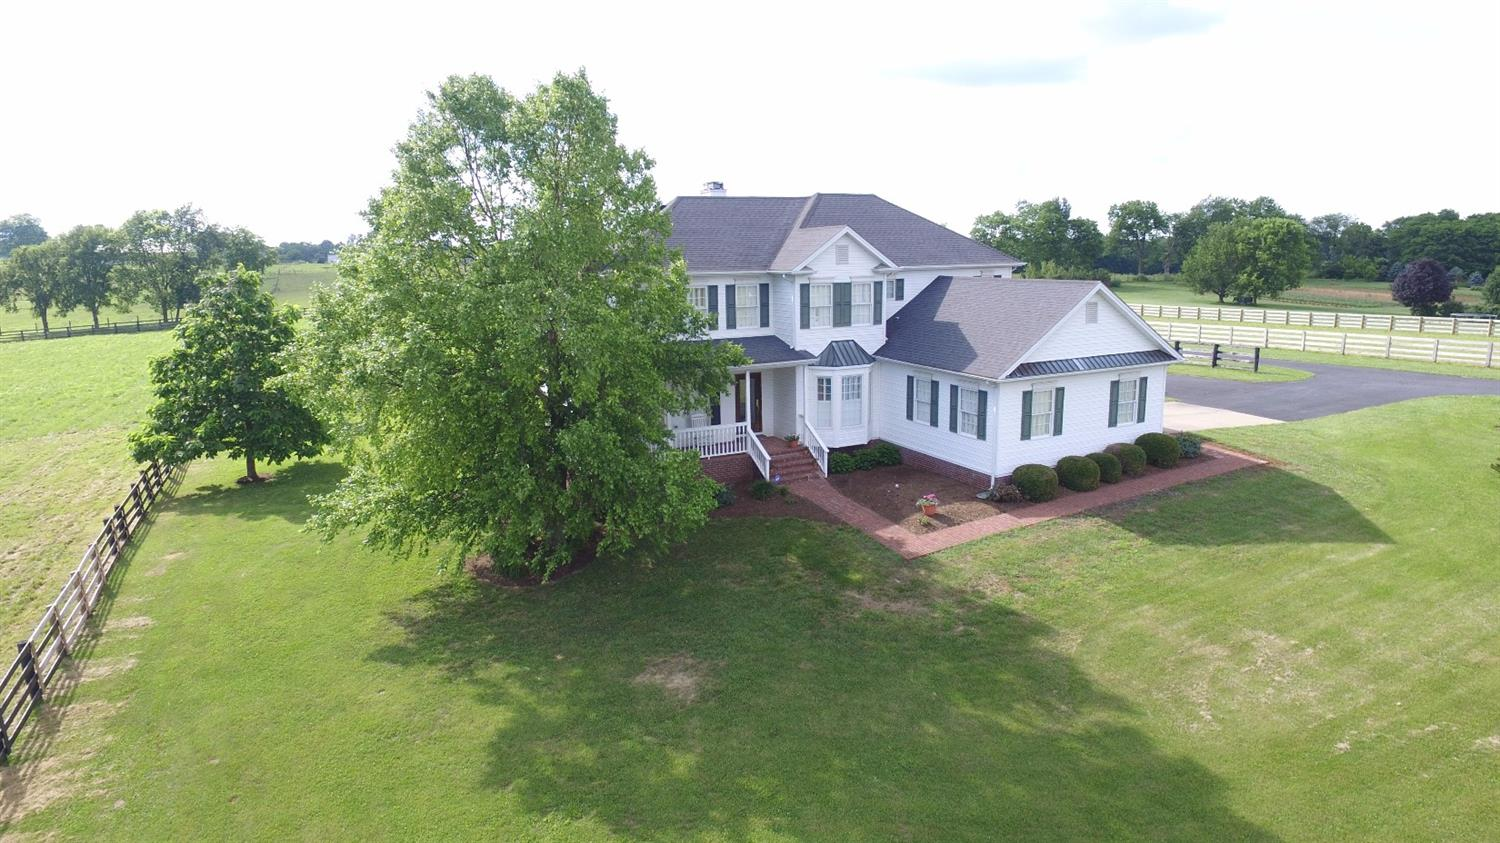 Home For Sale at 105 Creekside Dr, Georgetown, KY 40324